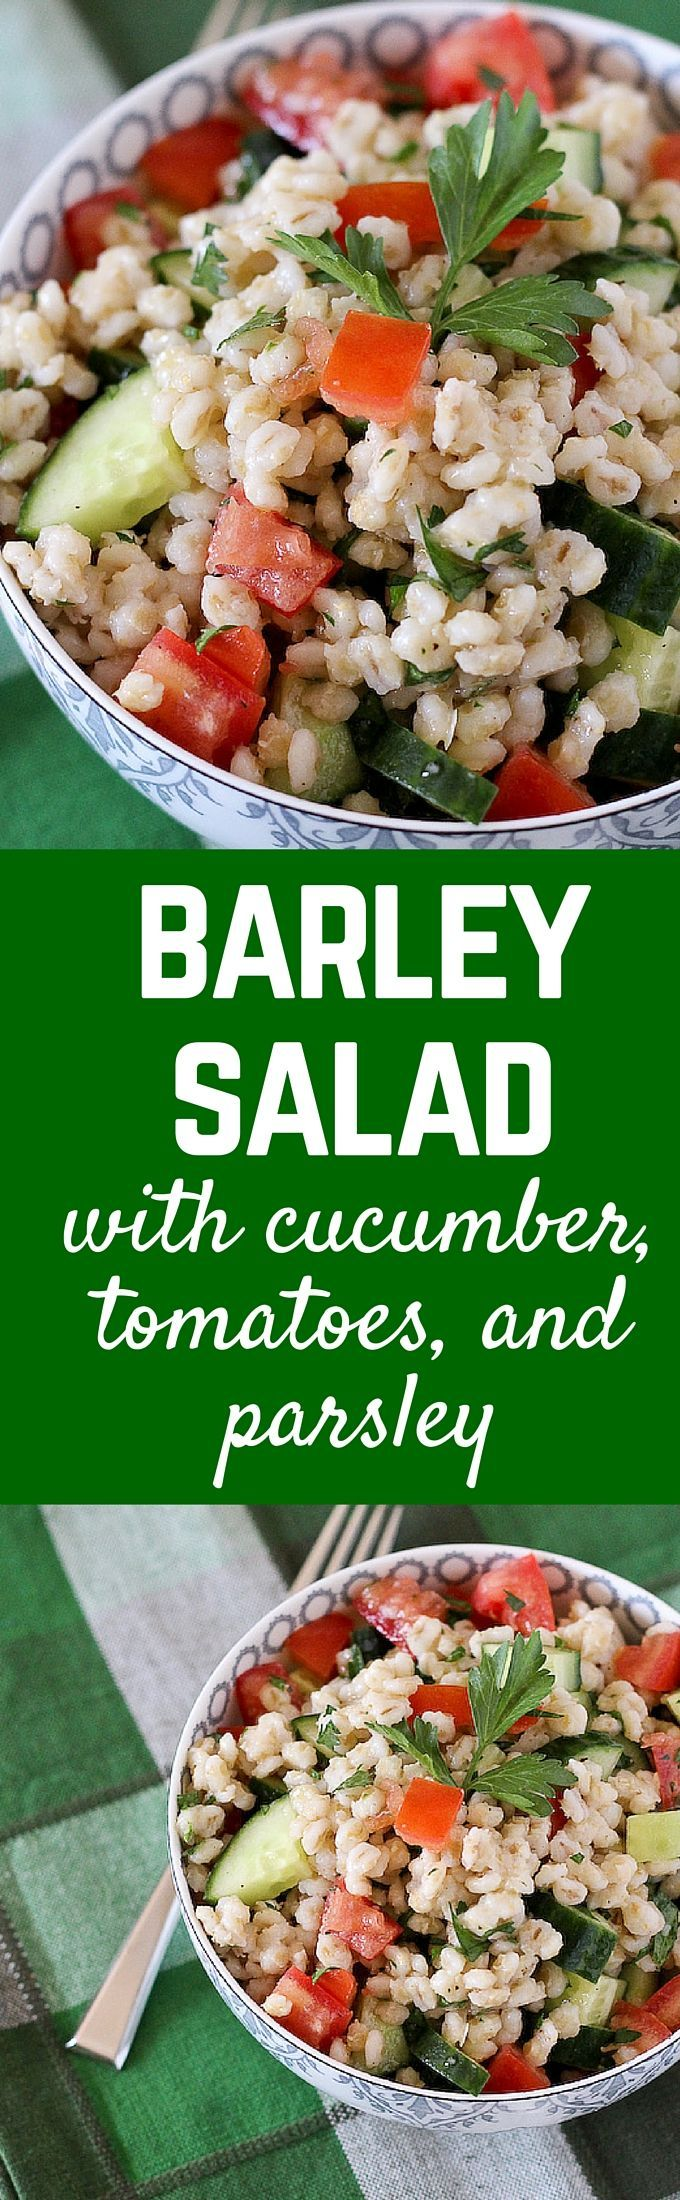 This Barley Salad with cucumbers, tomatoes and parsley is a a refreshing, healthy, and filling summer salad. It works great as a side dish or as a complete meal. Get the recipe on http://RachelCooks.com!